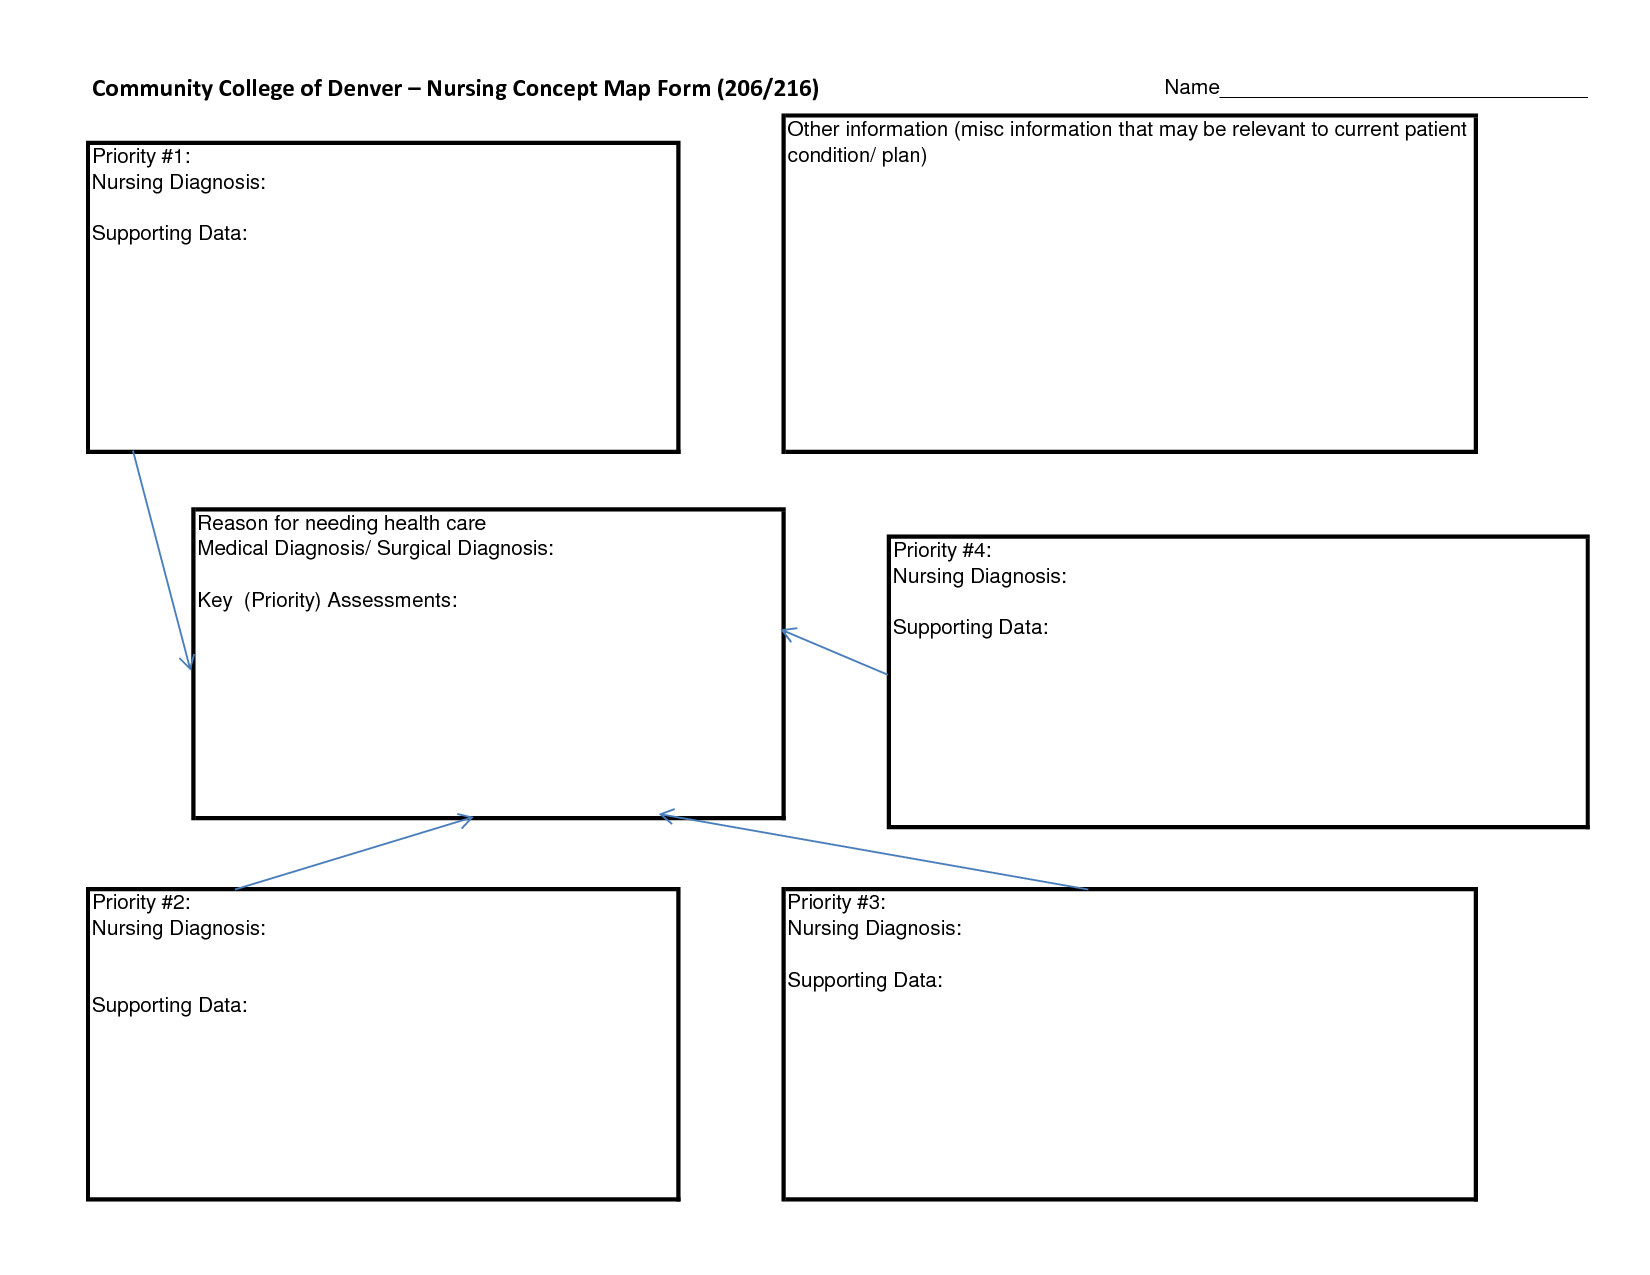 Blank Concept Map Template 16 Of ati Nursing Template Blank